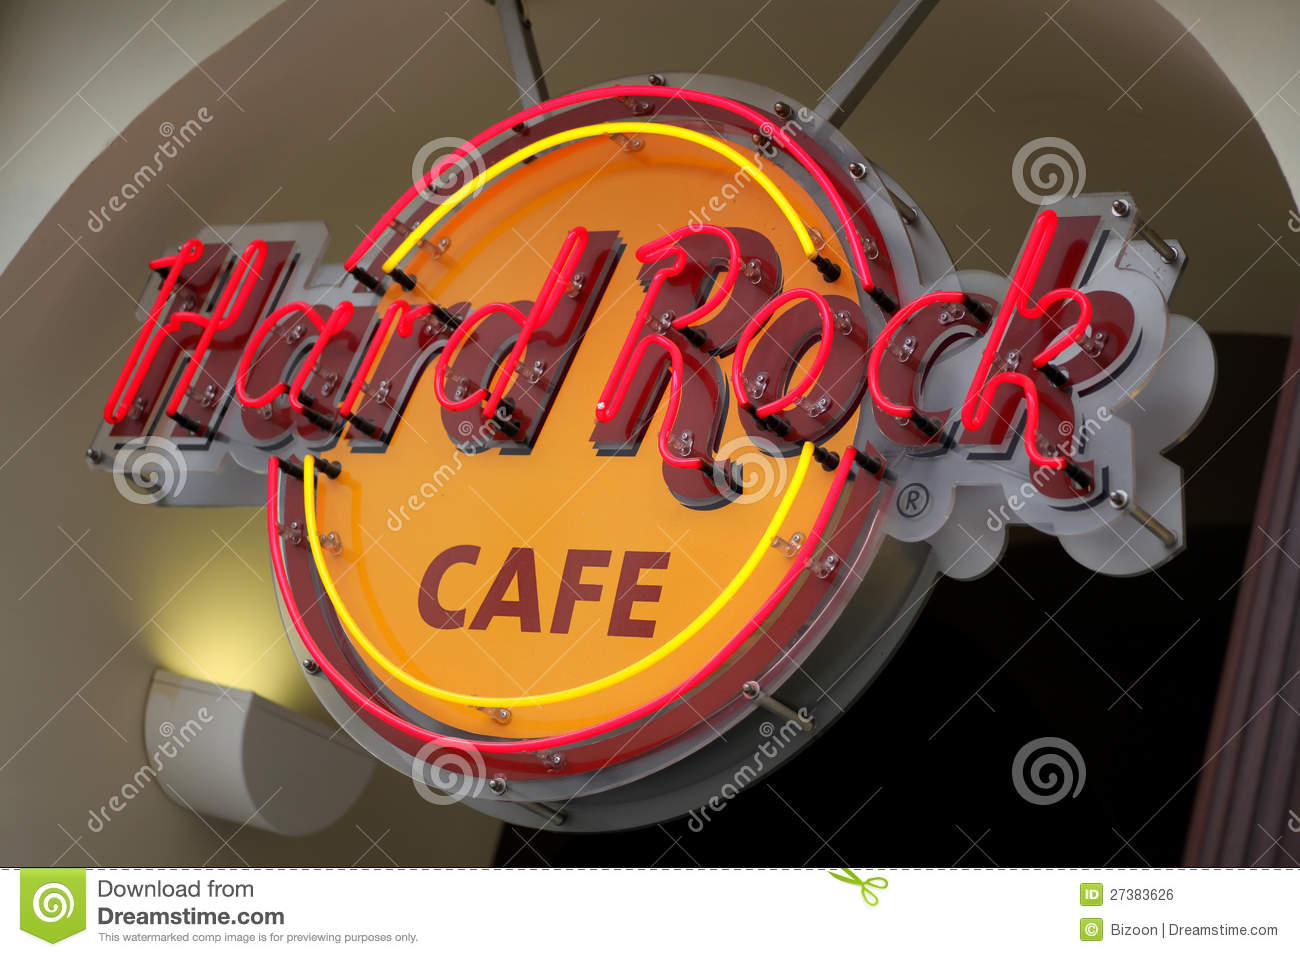 Kette Hard Rock Cafe